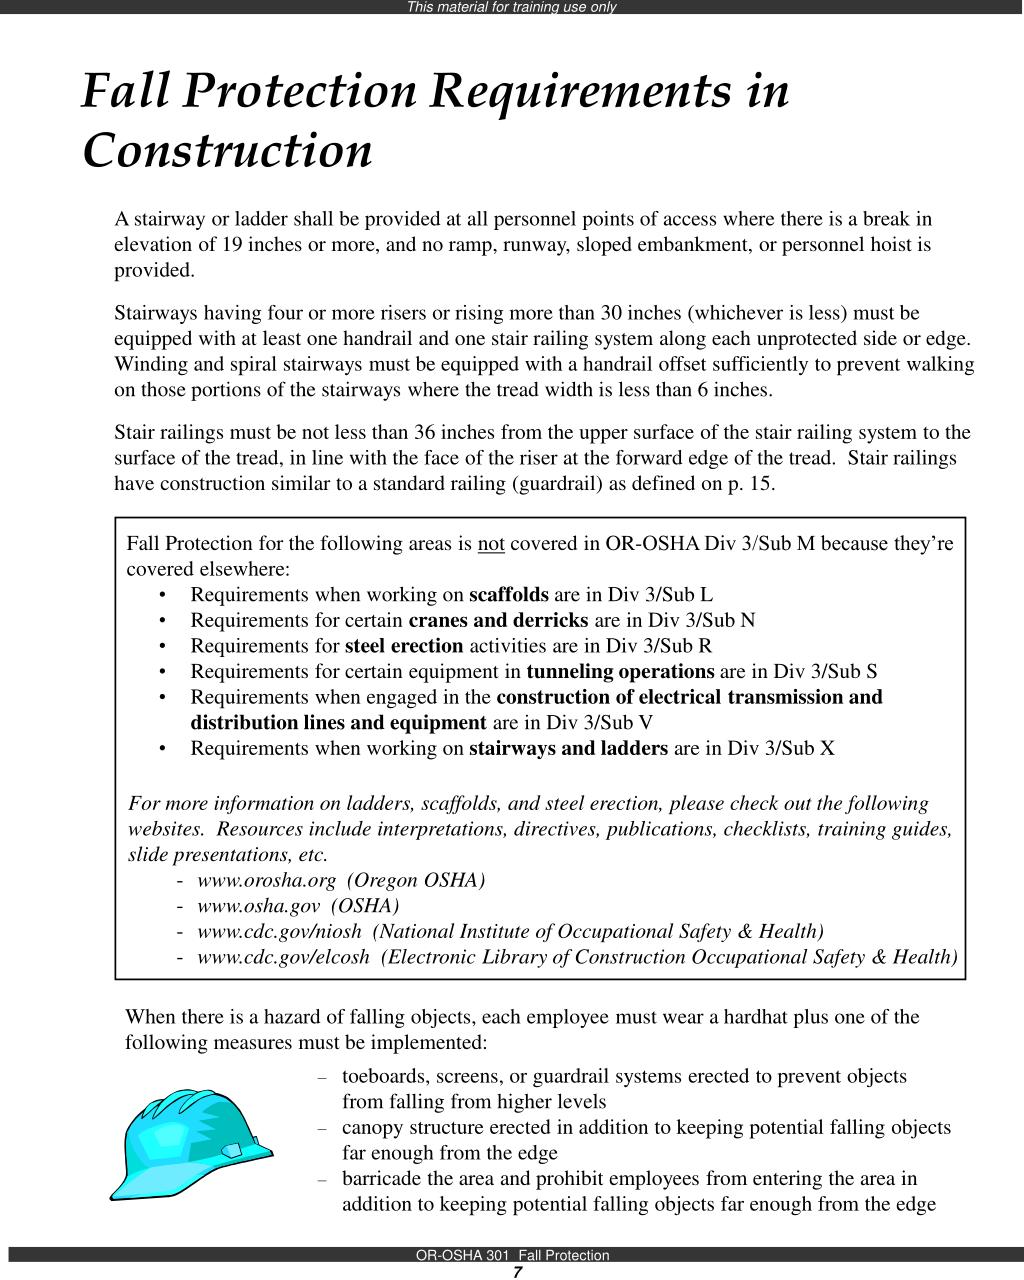 Fall Protection Requirements in Construction